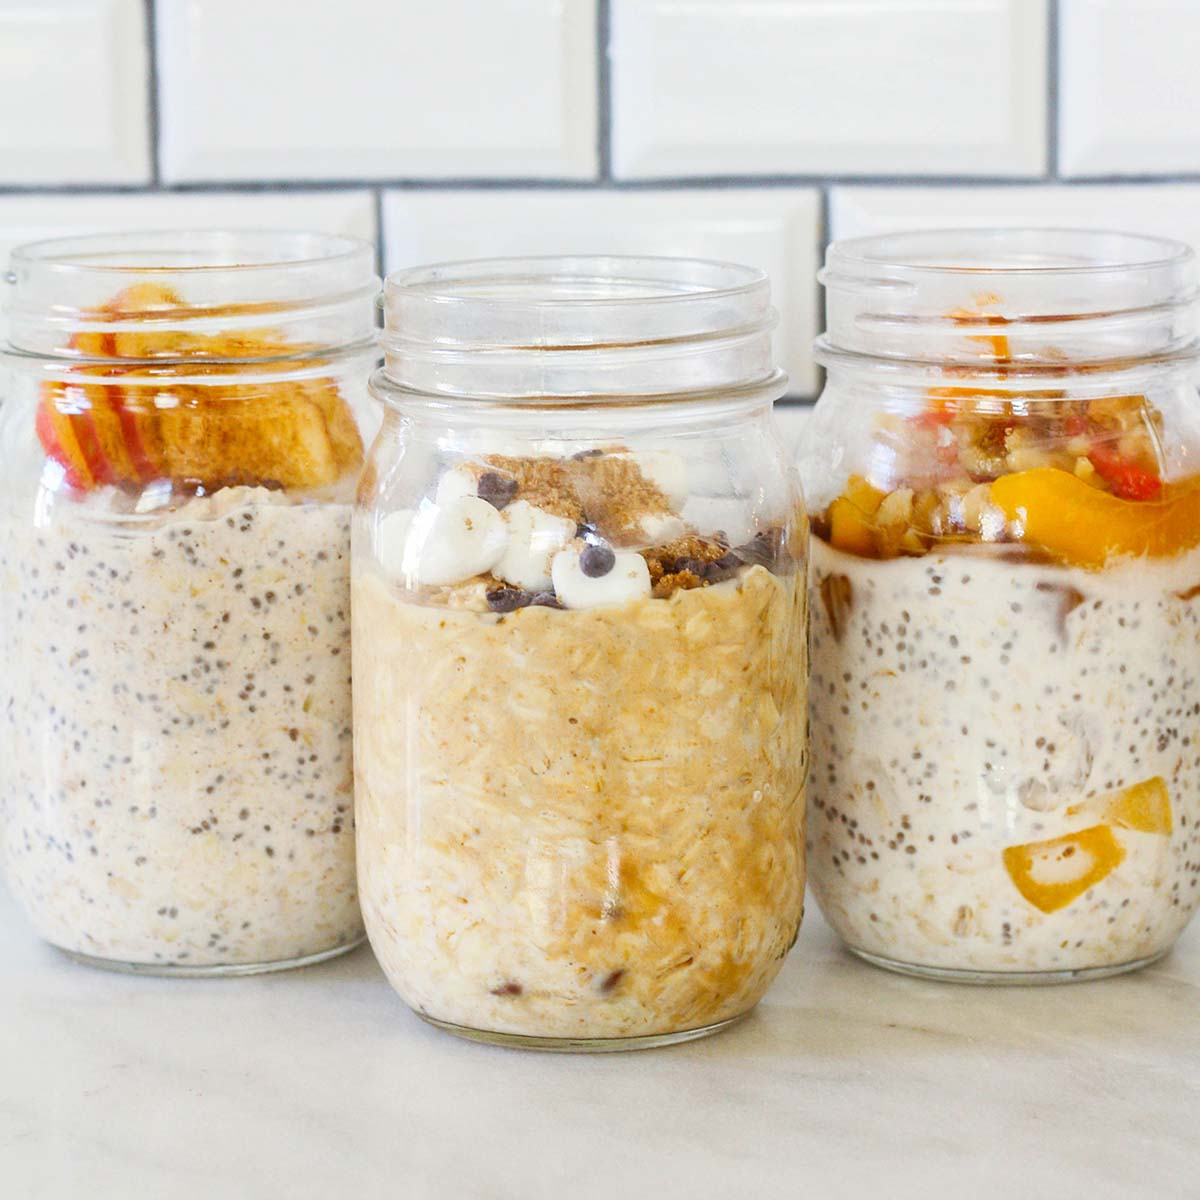 three jars with overnight oats in each and different toppings